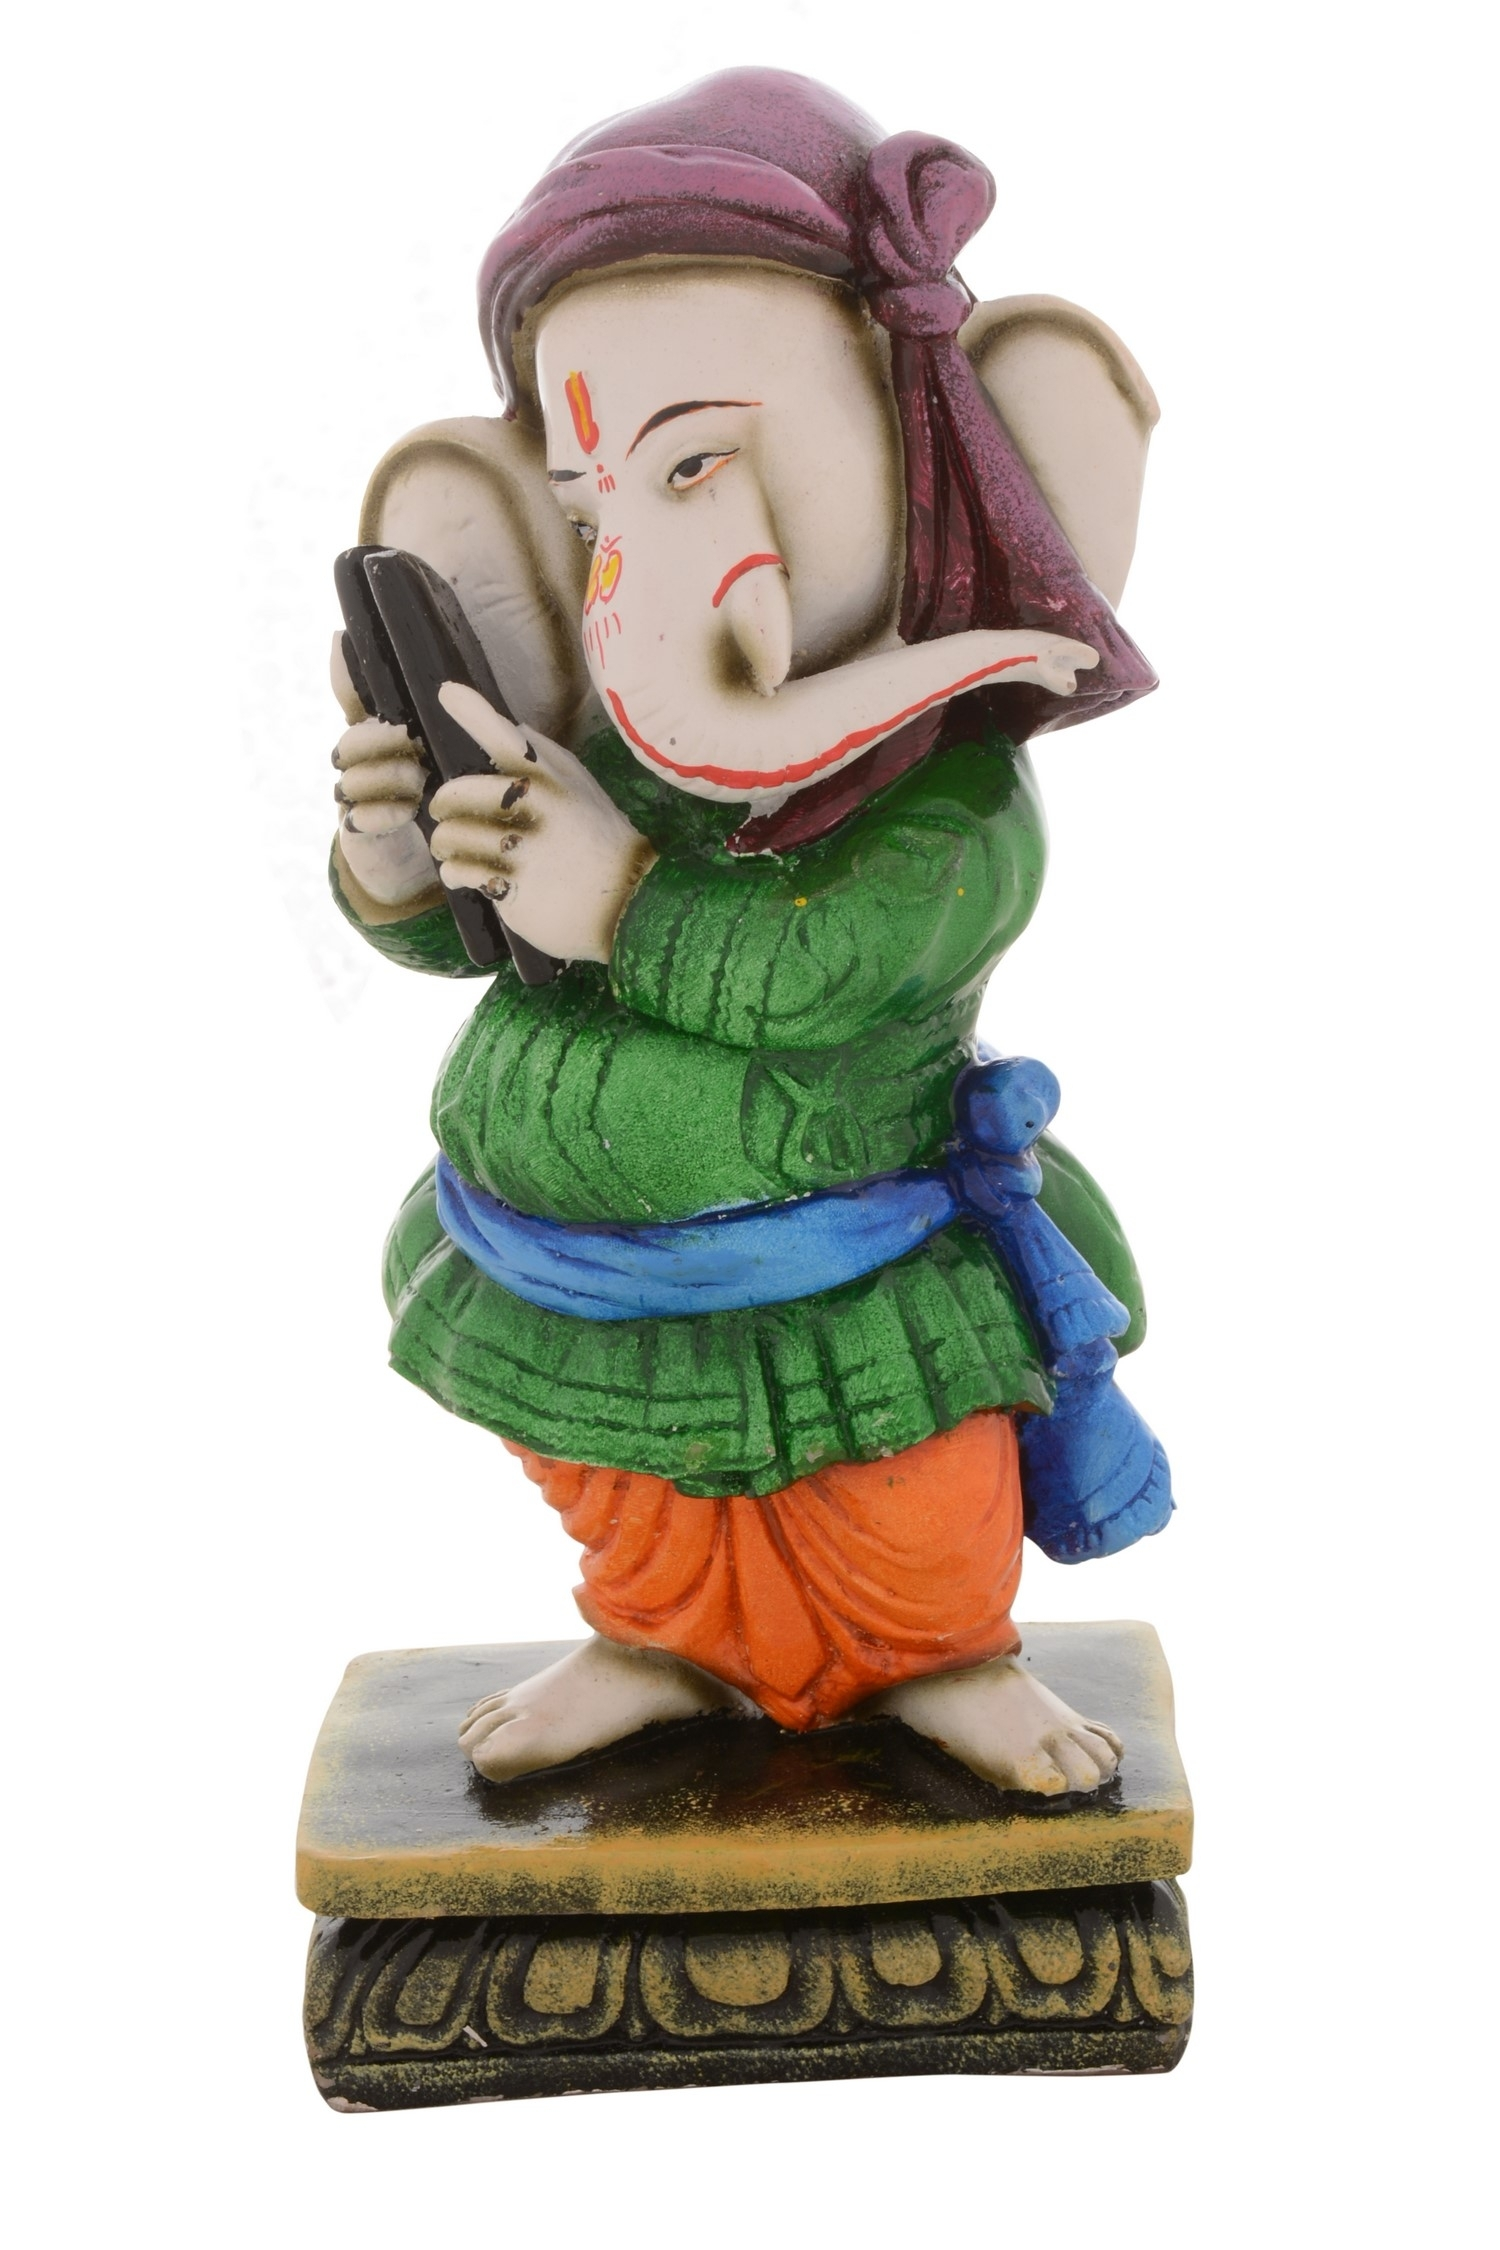 Premium Figurine of Lord Ganesha playing Musical Instrument Indian Home Decor